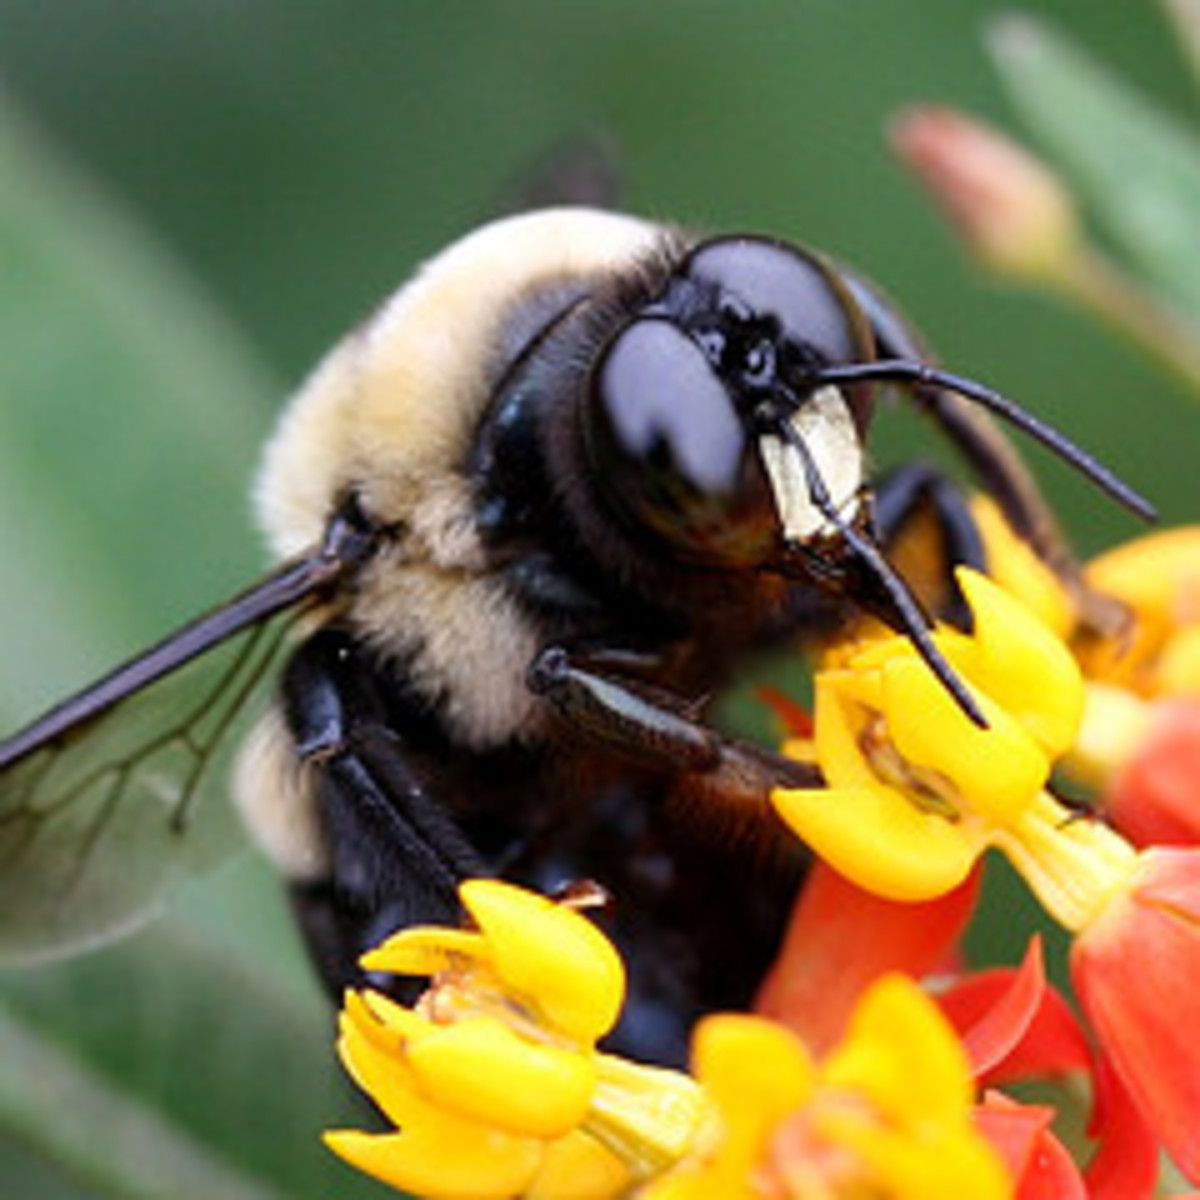 Bee friendly Gardens. Help the Honey Bees  Awesome pictures of  our busy Bumble  and Worker Friends.